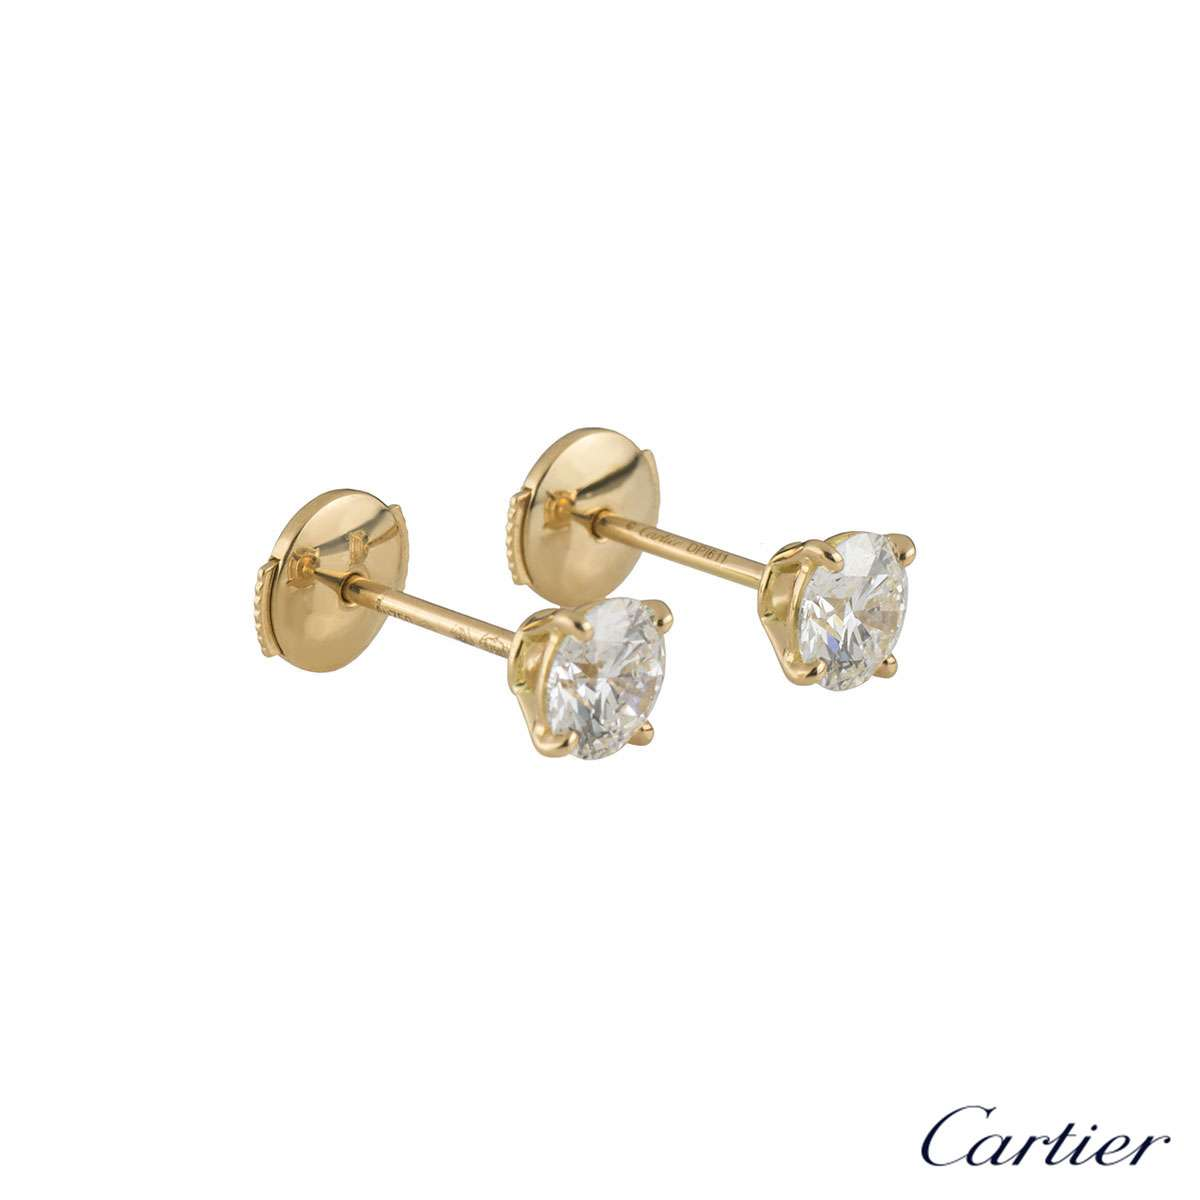 Cartier Yellow Gold 1895 Diamond Earrings X 1 06ct N8023400